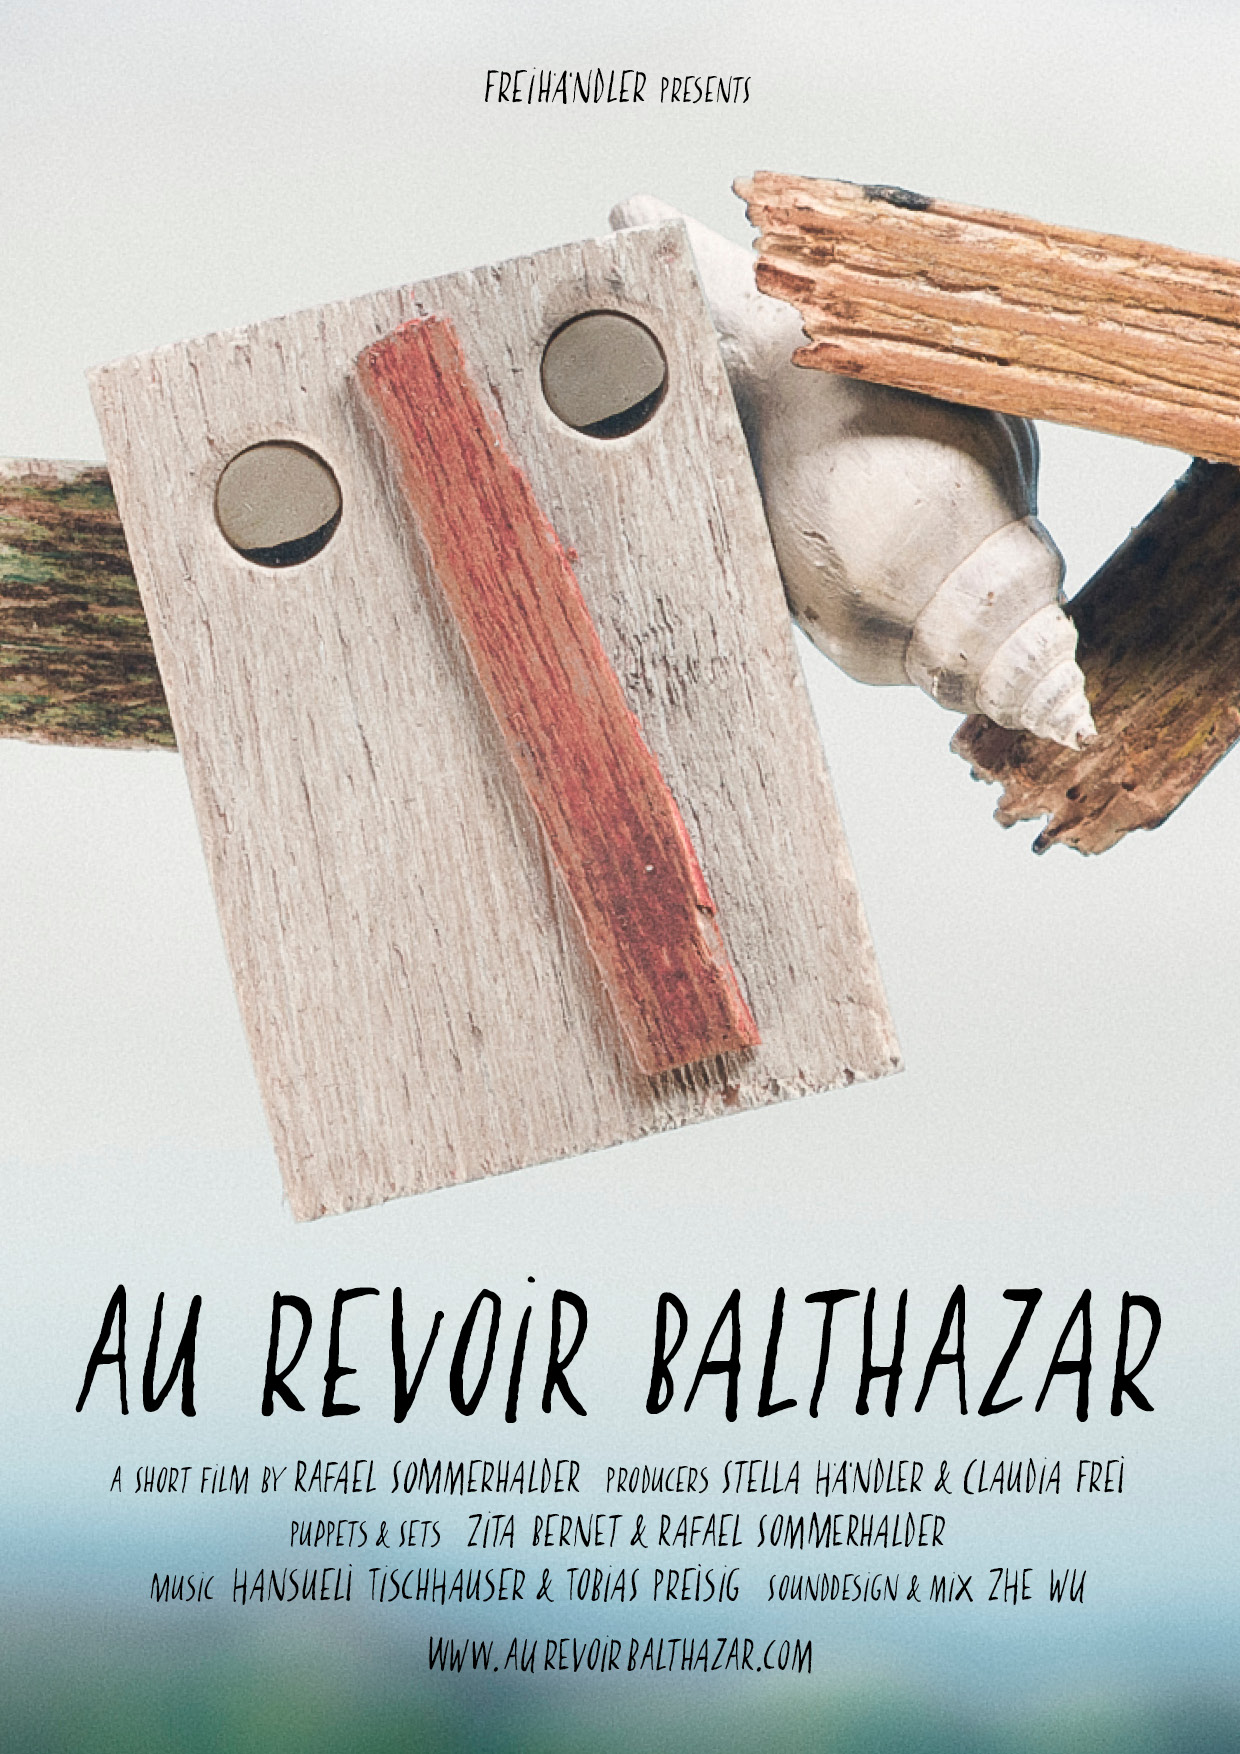 Au Revoir Balthazaar - A scarecrow, a storm, a broken leg. The resonant sound of a seashell. Leaving forever. Directed by Rafael Sommerhalder.